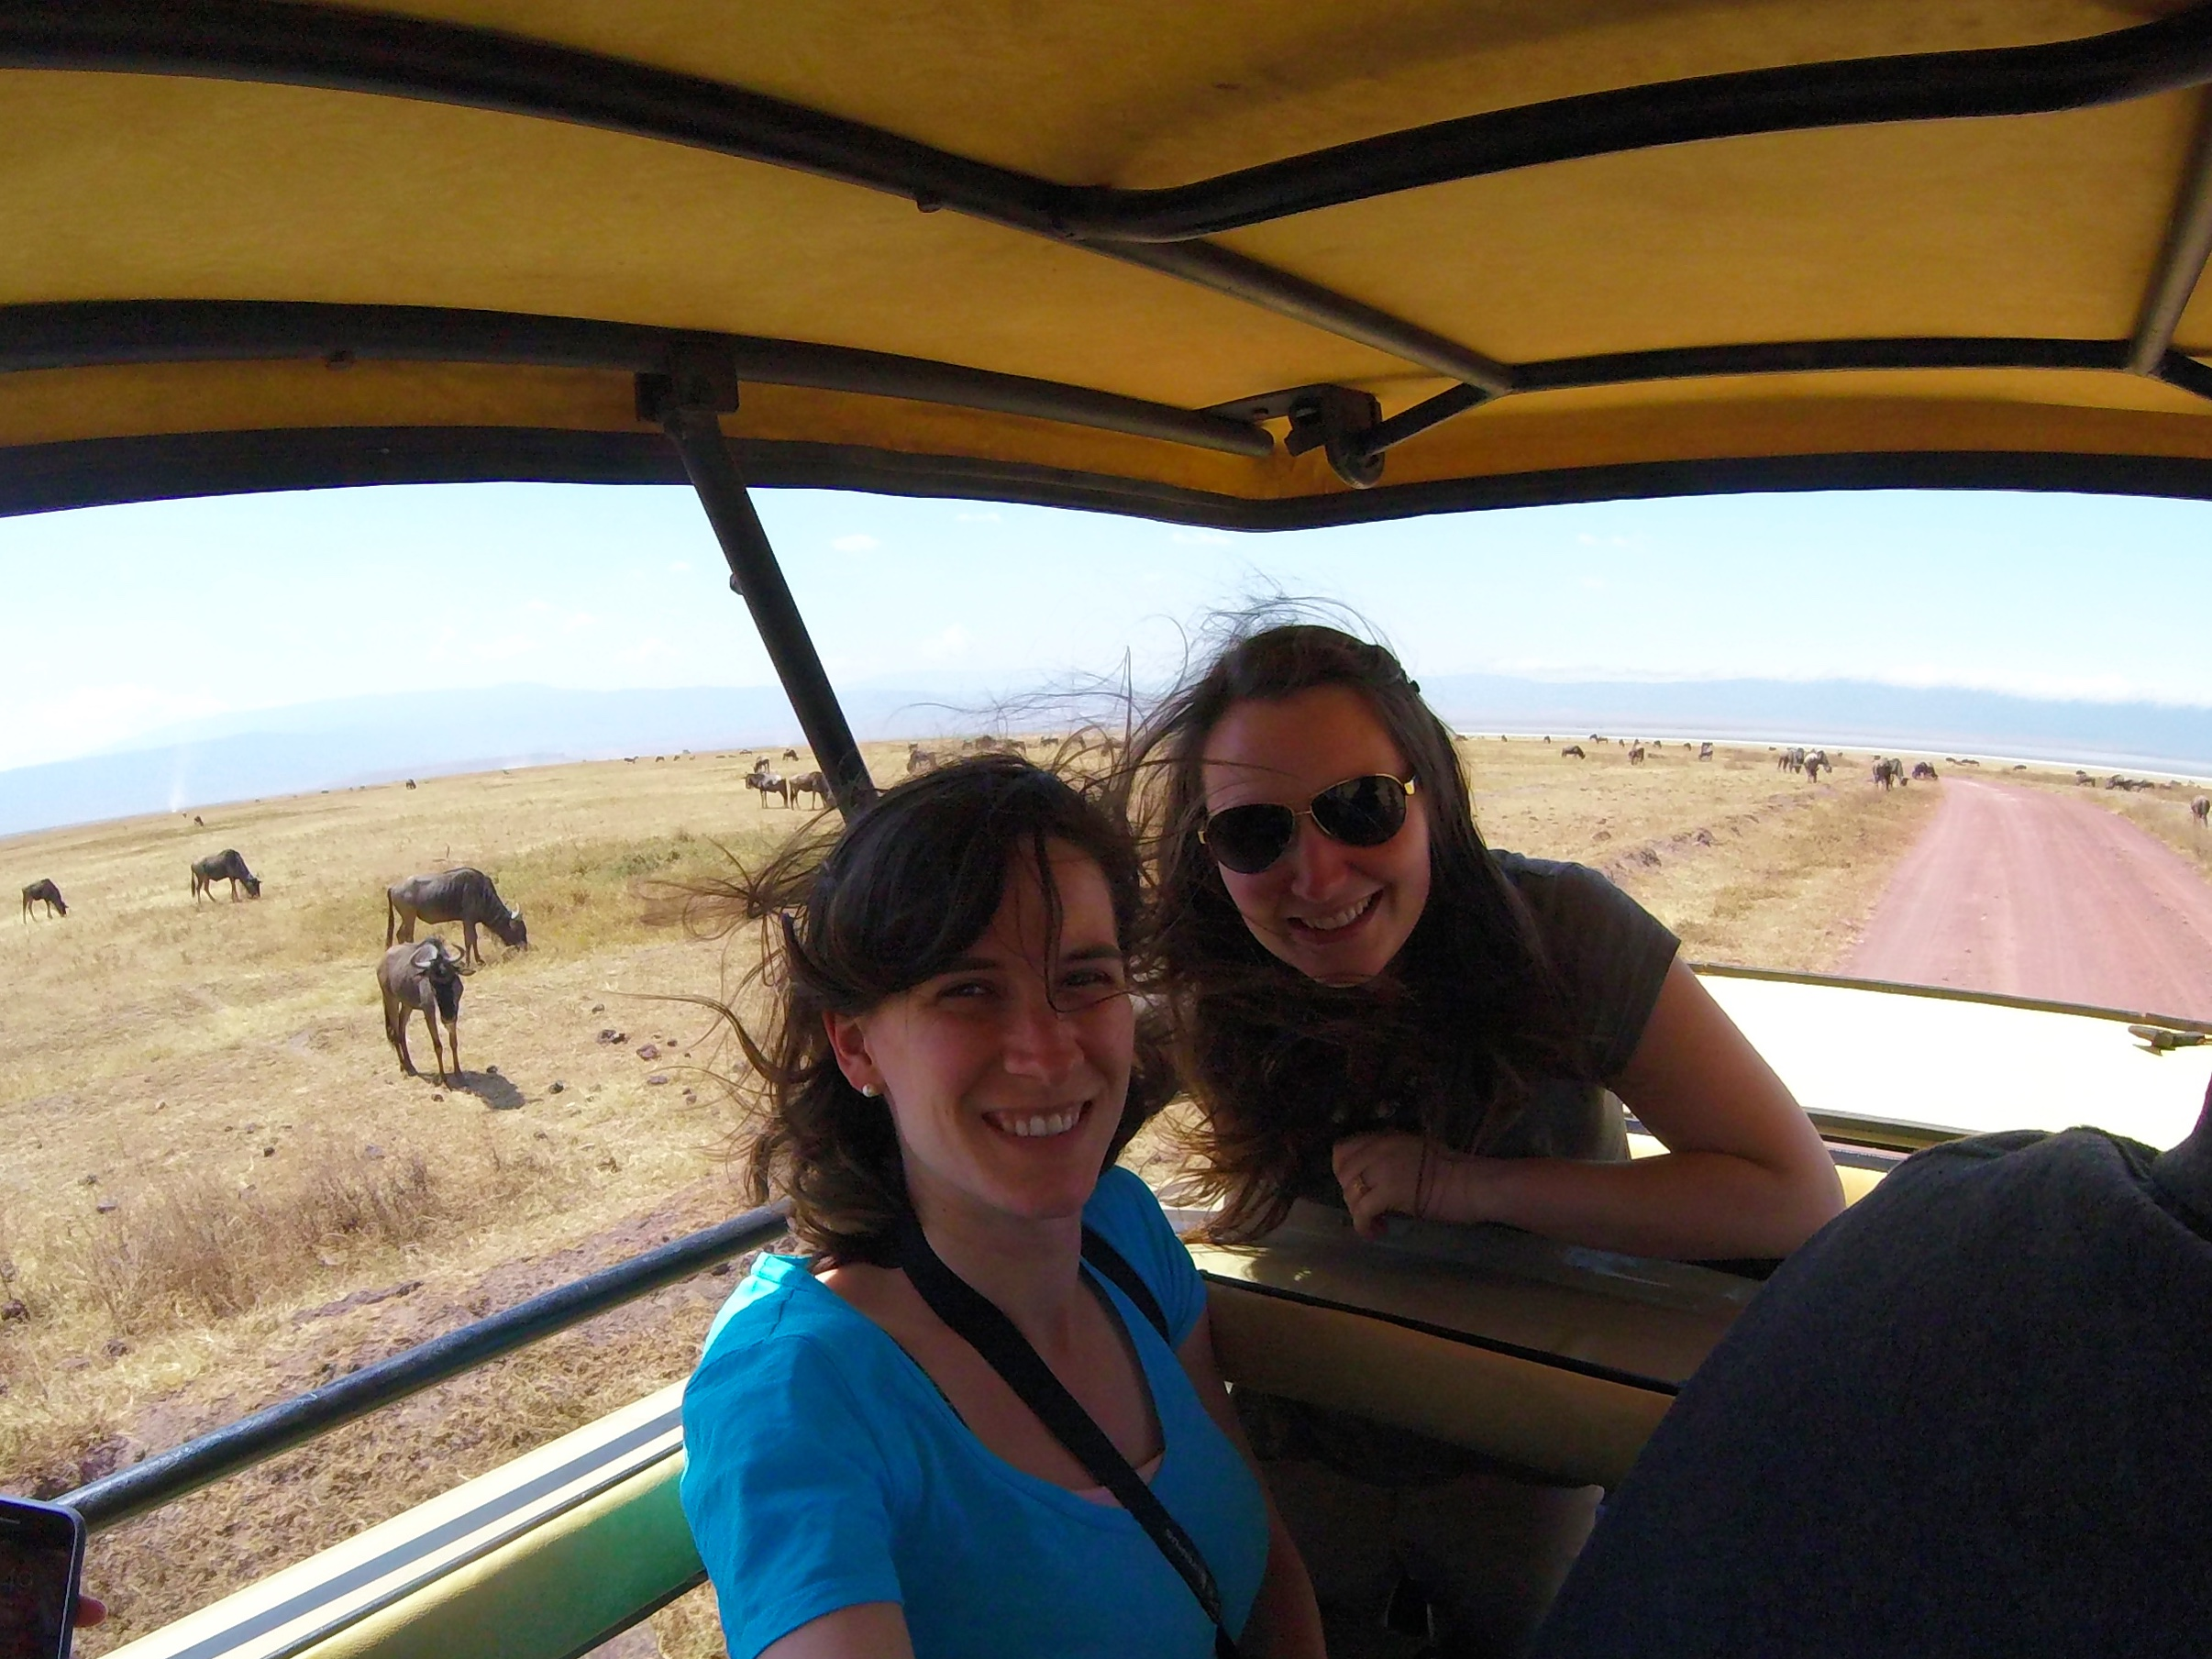 Me and Lilly in our pop-top safari jeep